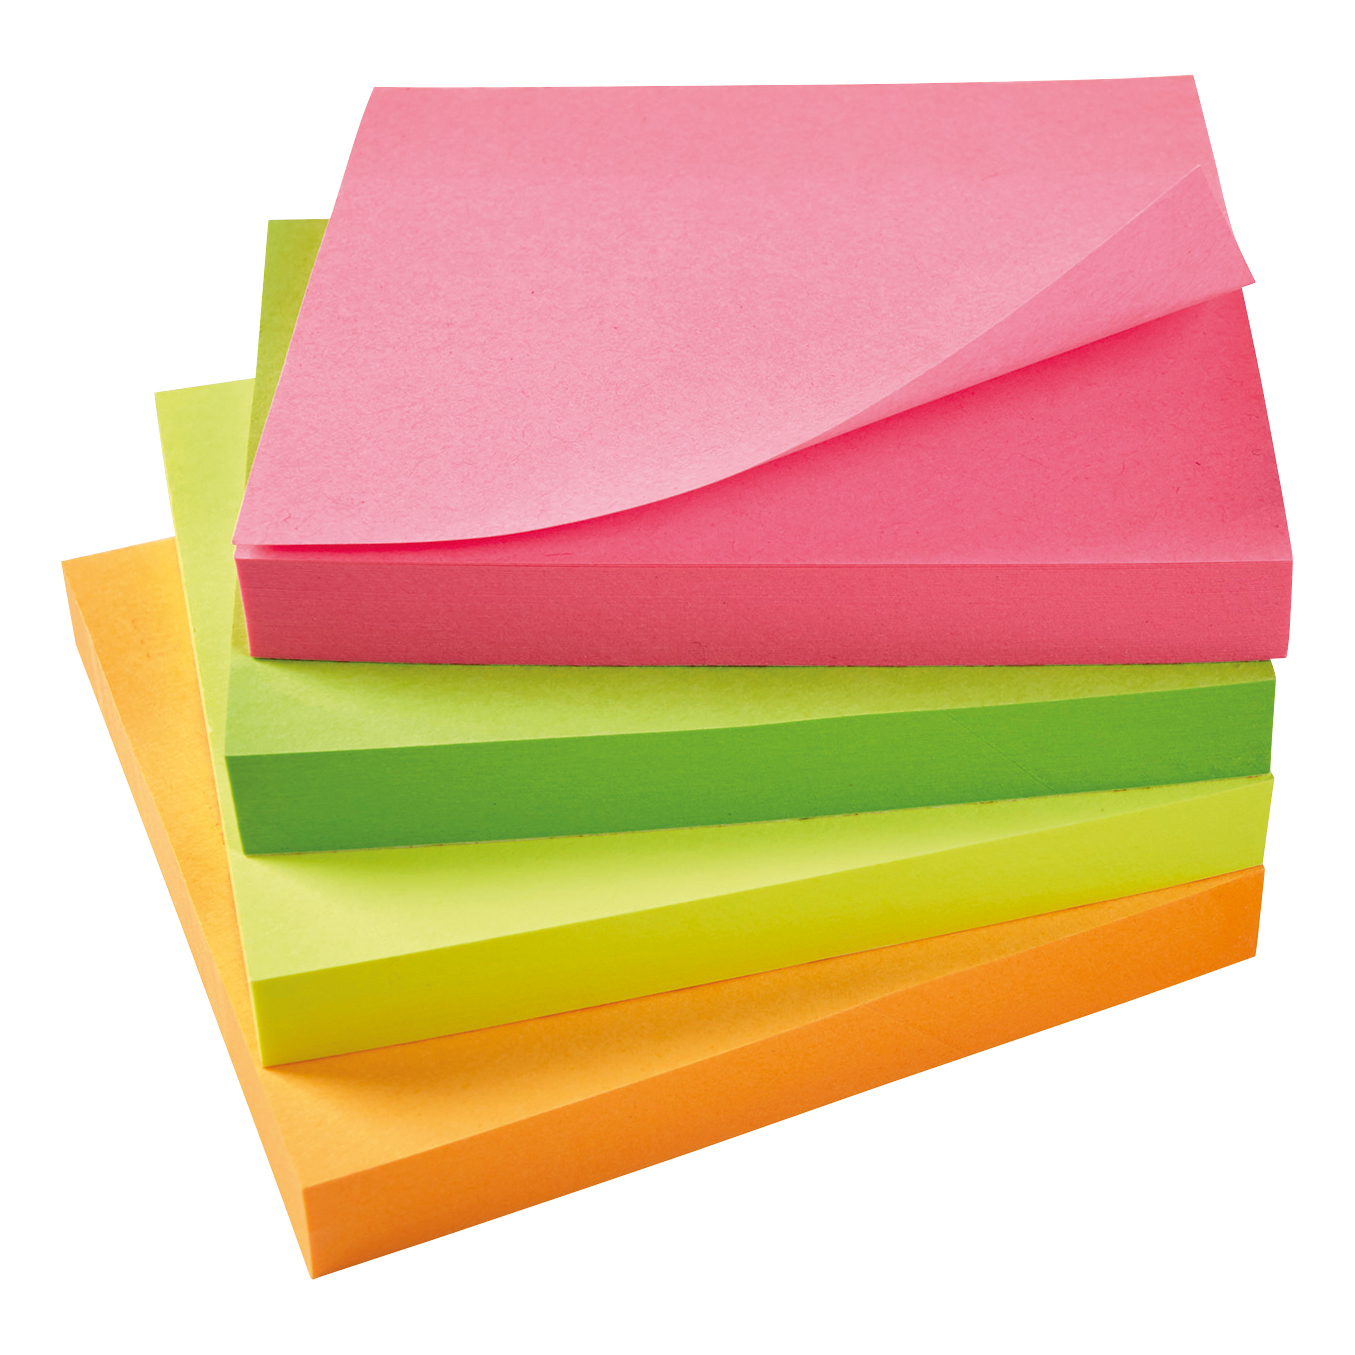 5 Star Office Re-Move Notes Repositionable Neon Pad of 100 Sheets 76x76mm Assorted Pack 12